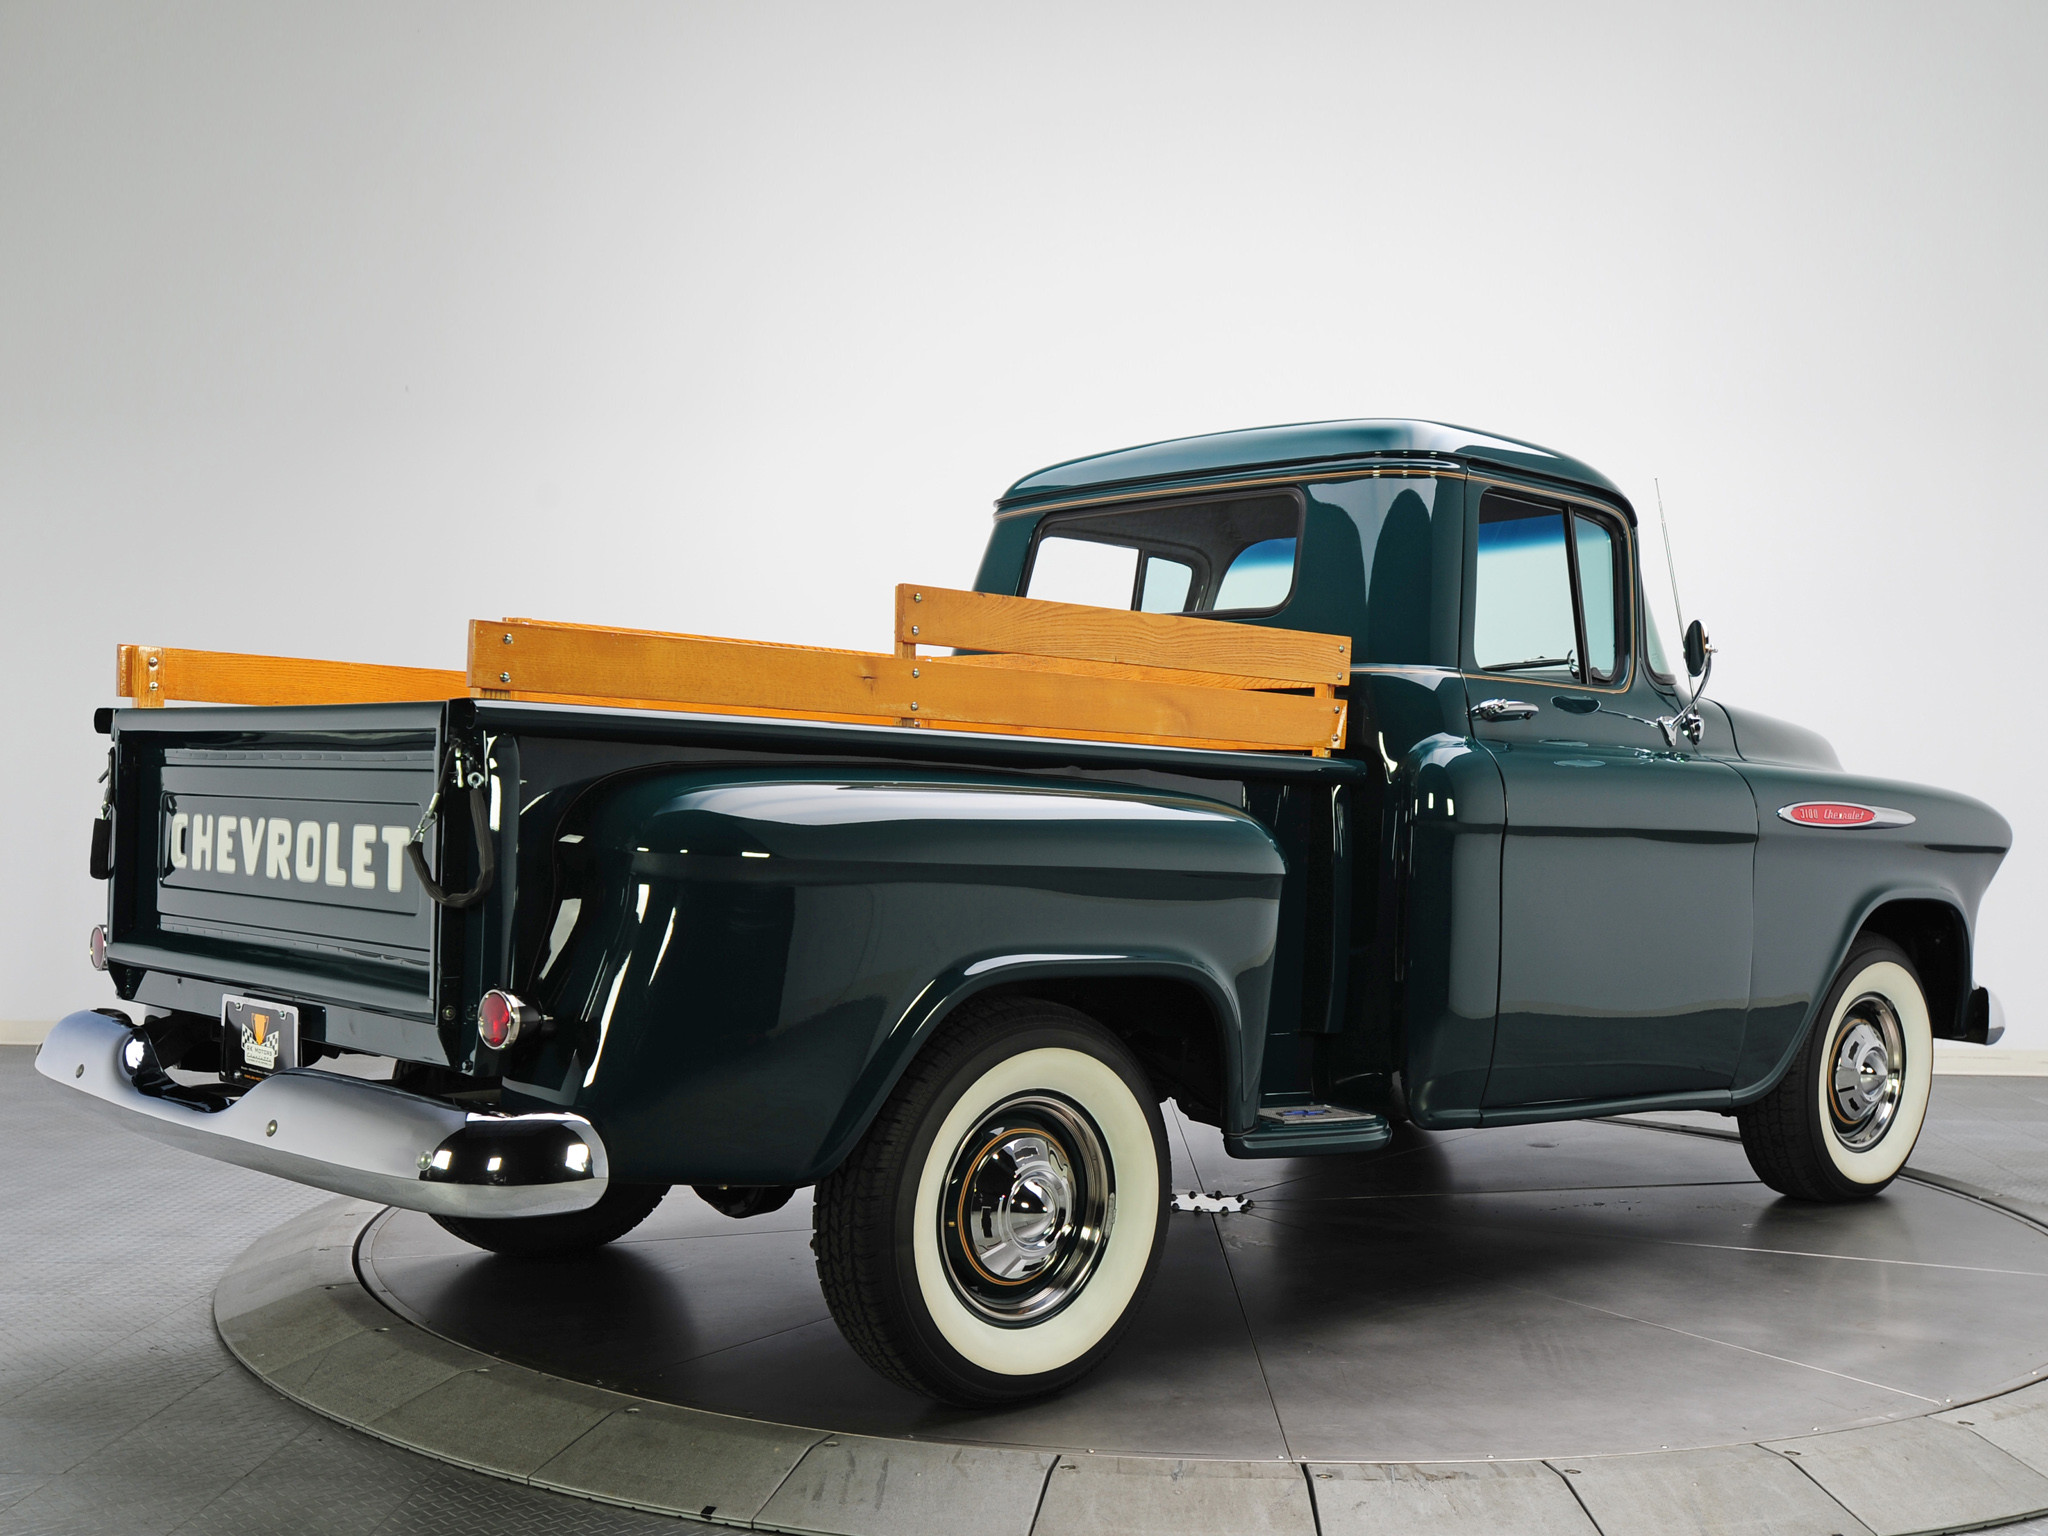 2048x1536 1957 chevy 4400 truck | Chevrolet 3100 Pickup 1957 Wallpapers